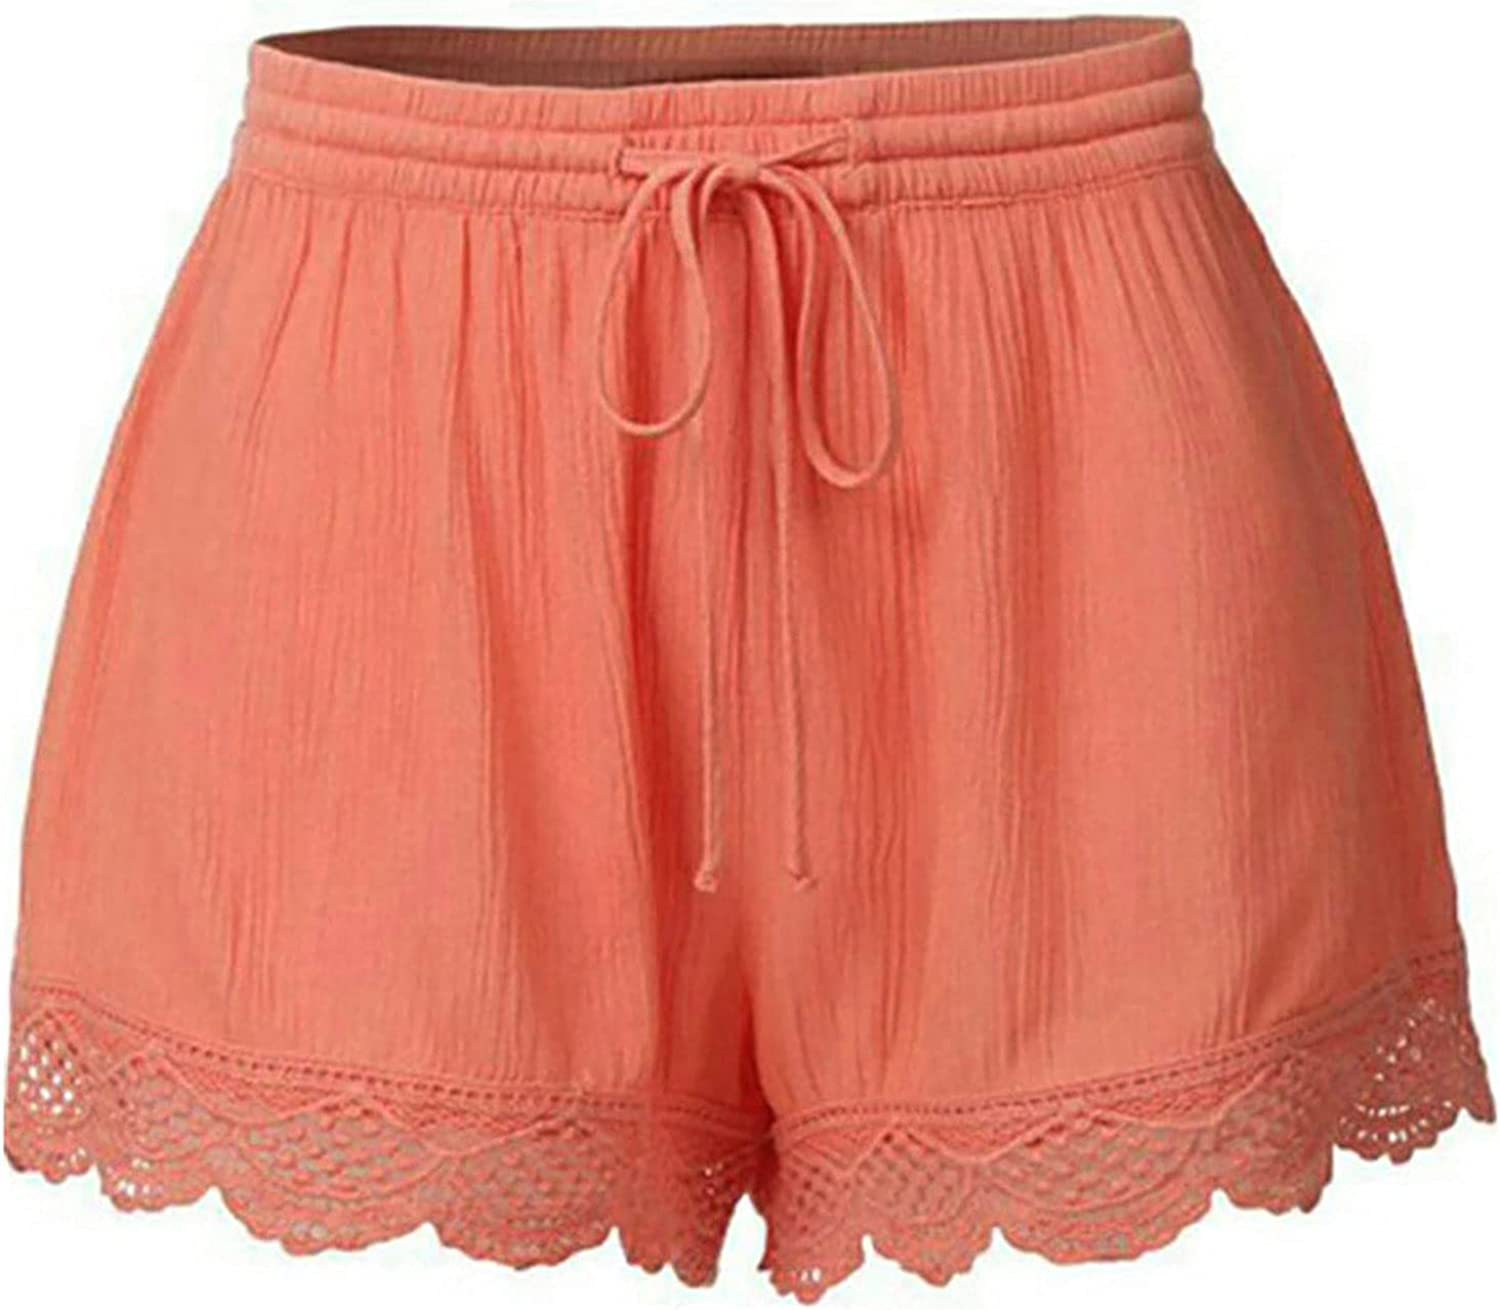 Womens Casual Shorts Plus Size Comfy Lace Drawstring Yoga Shorts Pants Sports Workout Solid Fashion Athletic Short